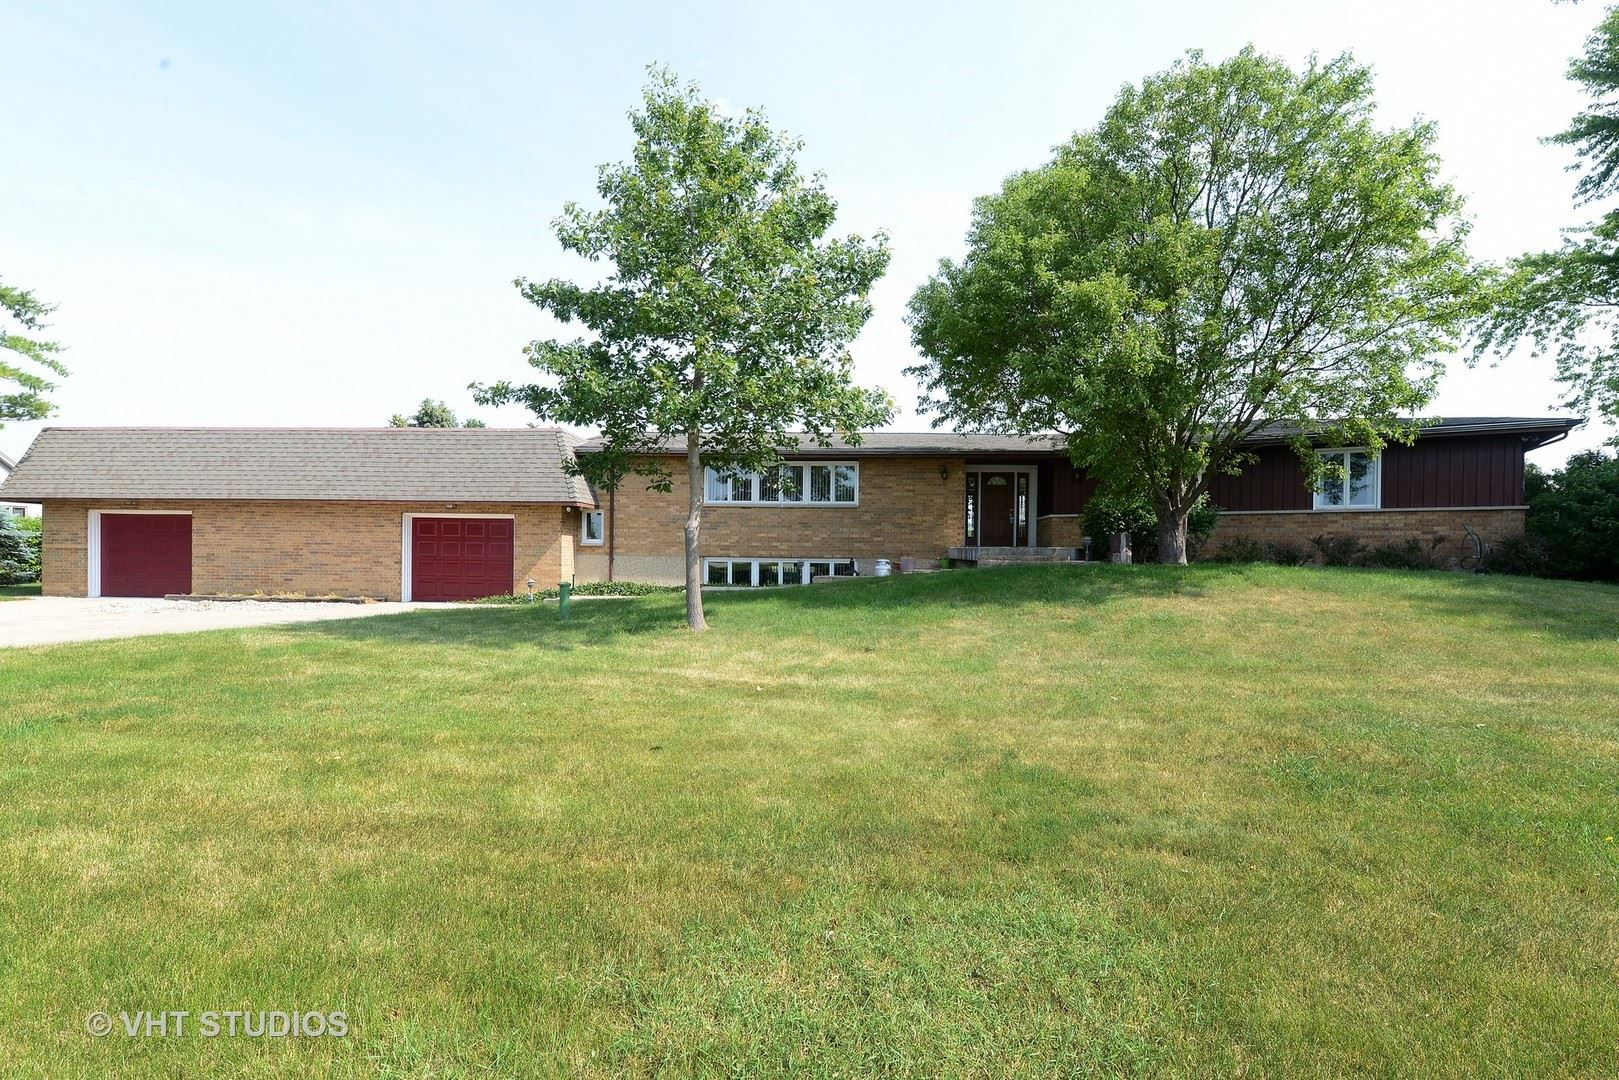 48W780 Chandelle Drive, Hampshire, IL 60140 - #: 10721100